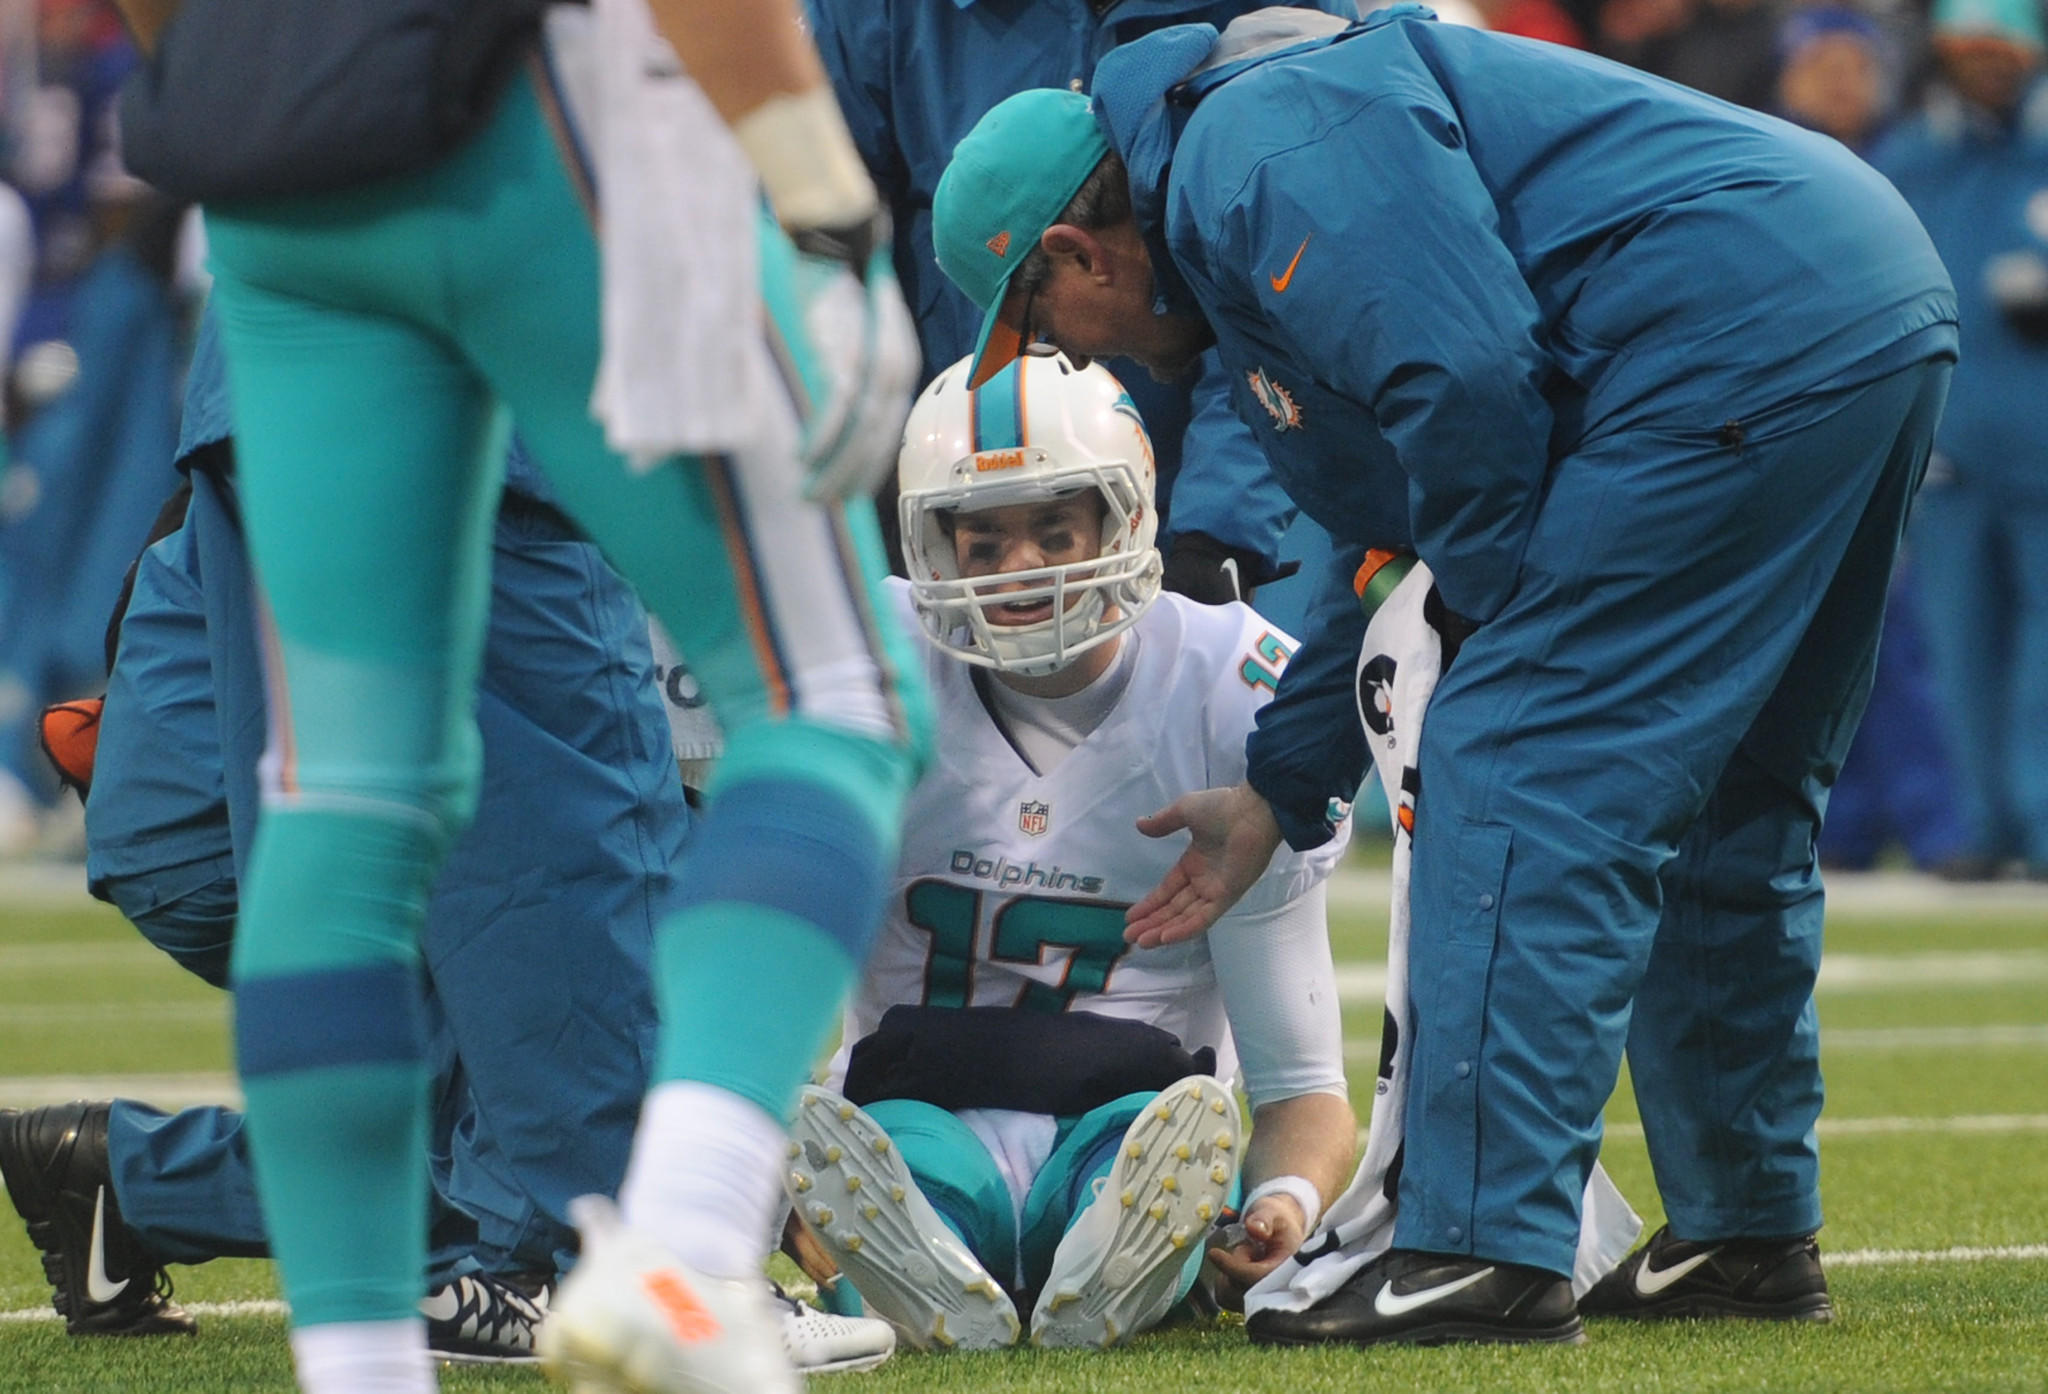 Ryan Tannehill gets injured after being sacked in the fourth quarter against the Bills. Tannehill later returned to the game. Miami Dolphins vs. Buffalo Bills. Ralph Wilson Stadium, Orchard Park, NY. 12/23/12. Jim Rassol, Sun Sentinel.